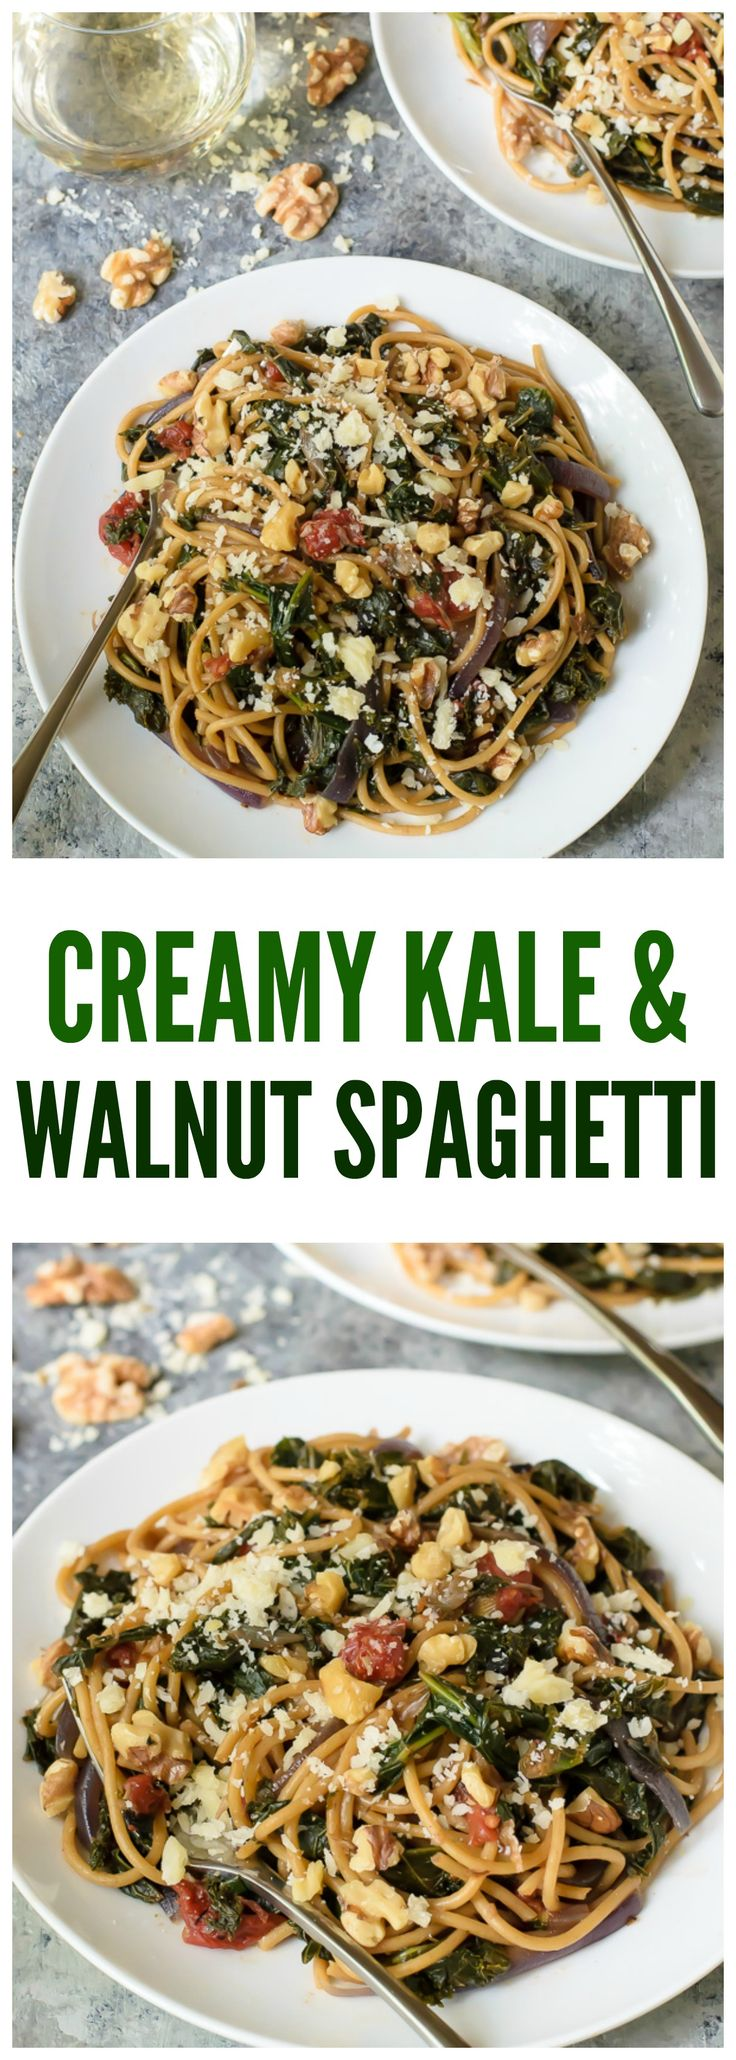 Creamy Kale and Walnut Spaghetti. An easy, healthy 30-minute meal! Recipe at wellplated.com @wellplated